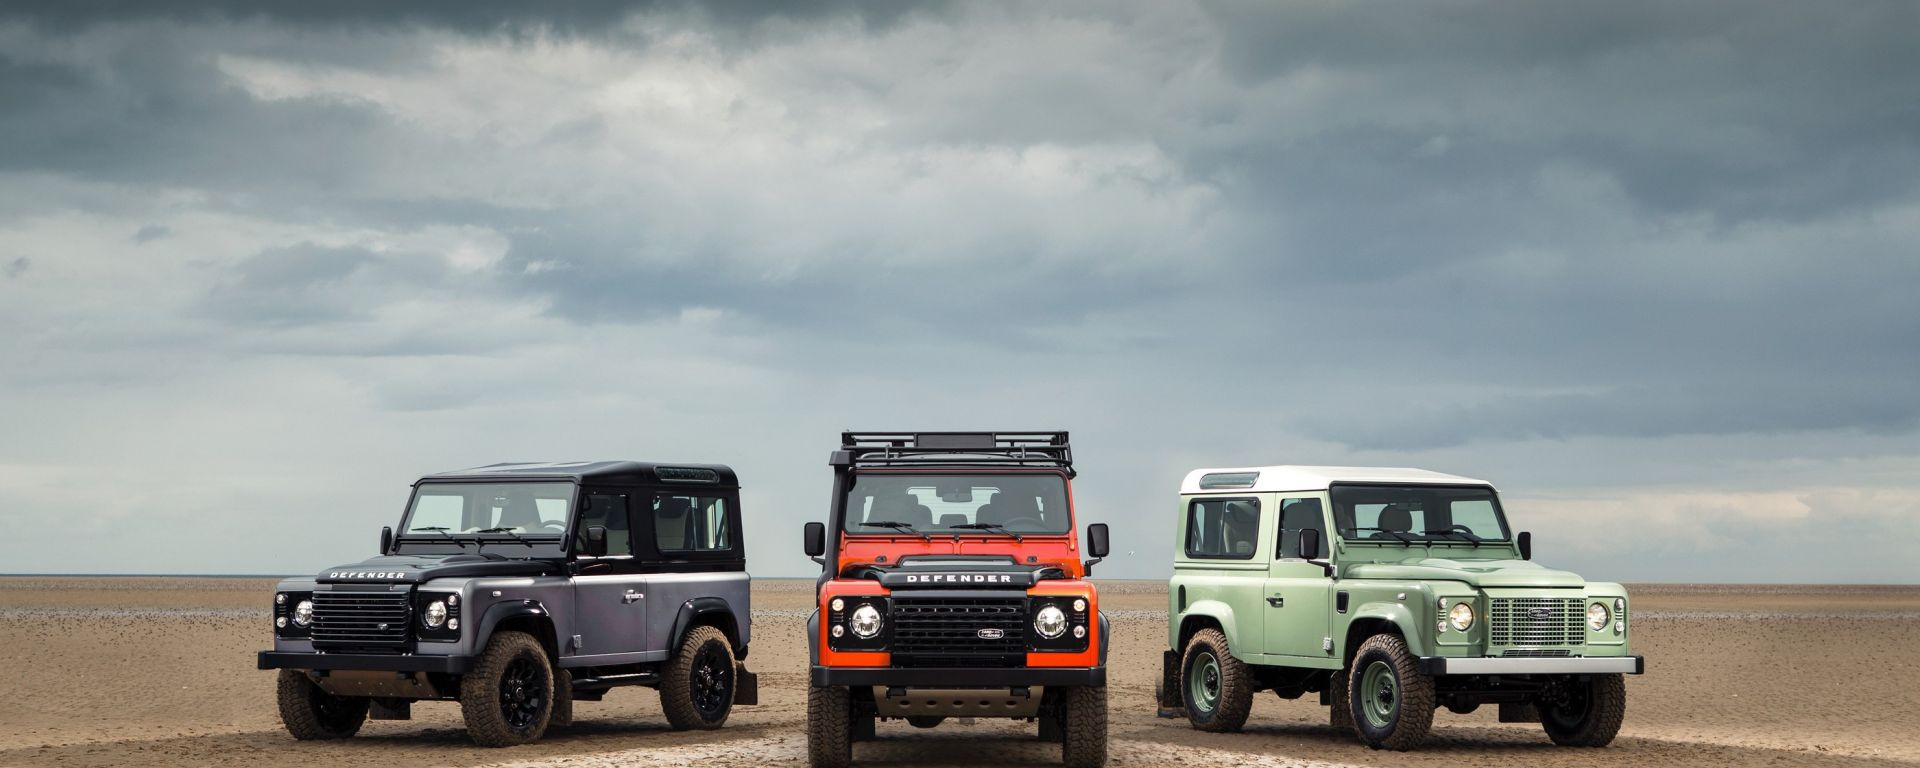 Land Rover Defender: addio in tre atti